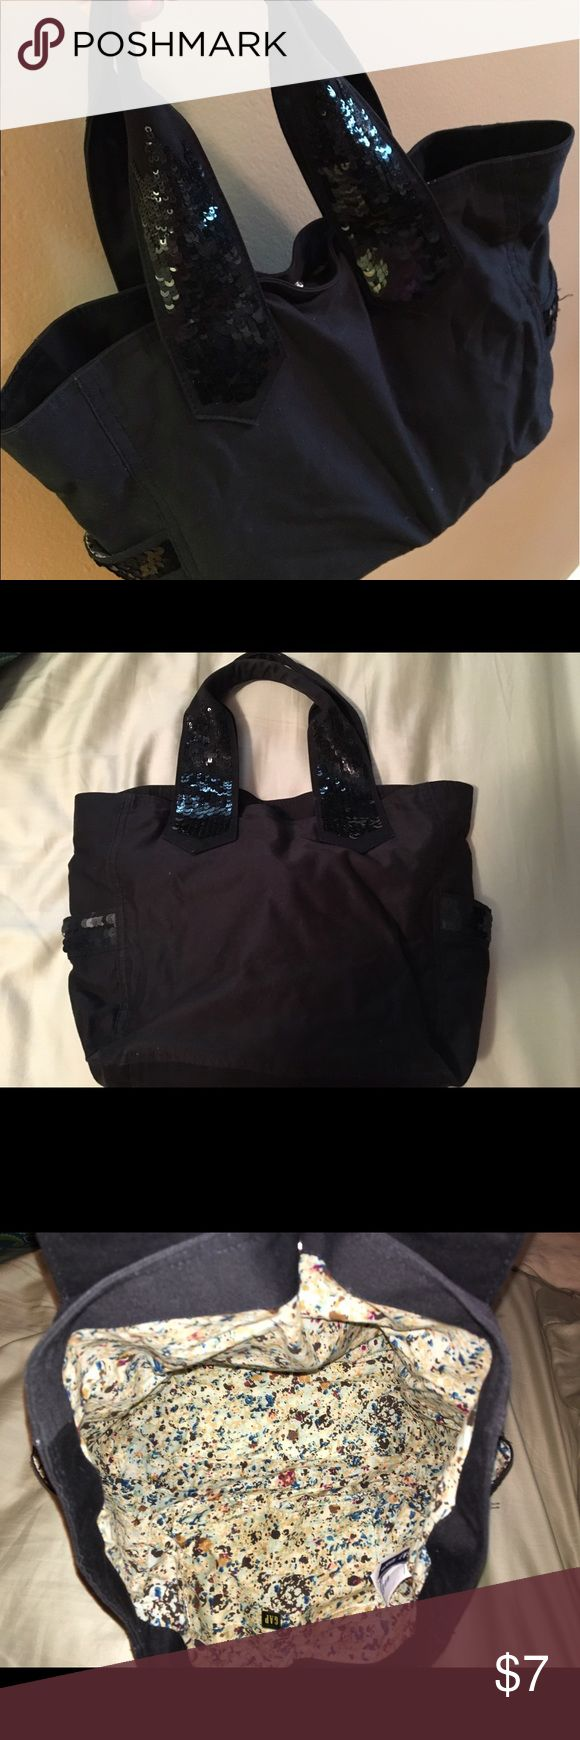 Sequin black Gap tote bag (large purse) Adorable, gently used tote style handbag from Gap. Black cotton with black sequins on handles and side pockets. Only used 2-3 times. From a pet-free and smoke-free home. GAP Bags Totes